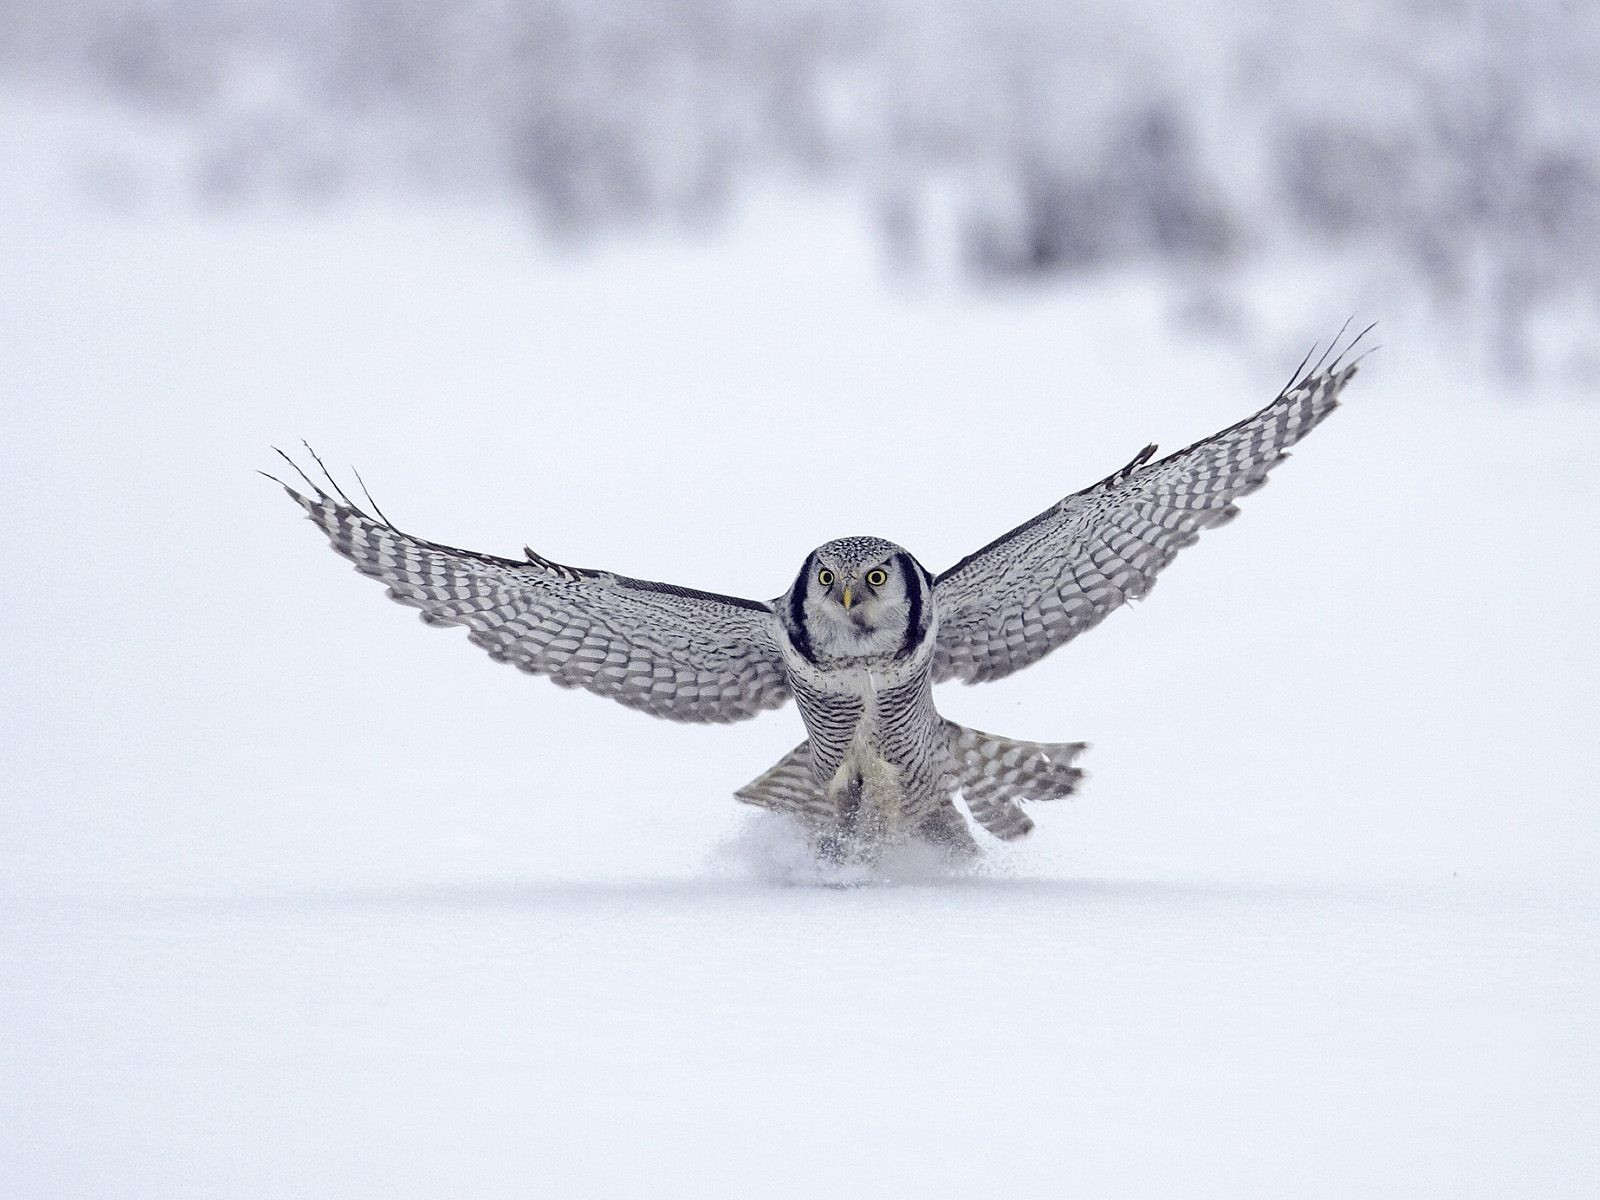 winter snow Birds Owls HD Wallpaper